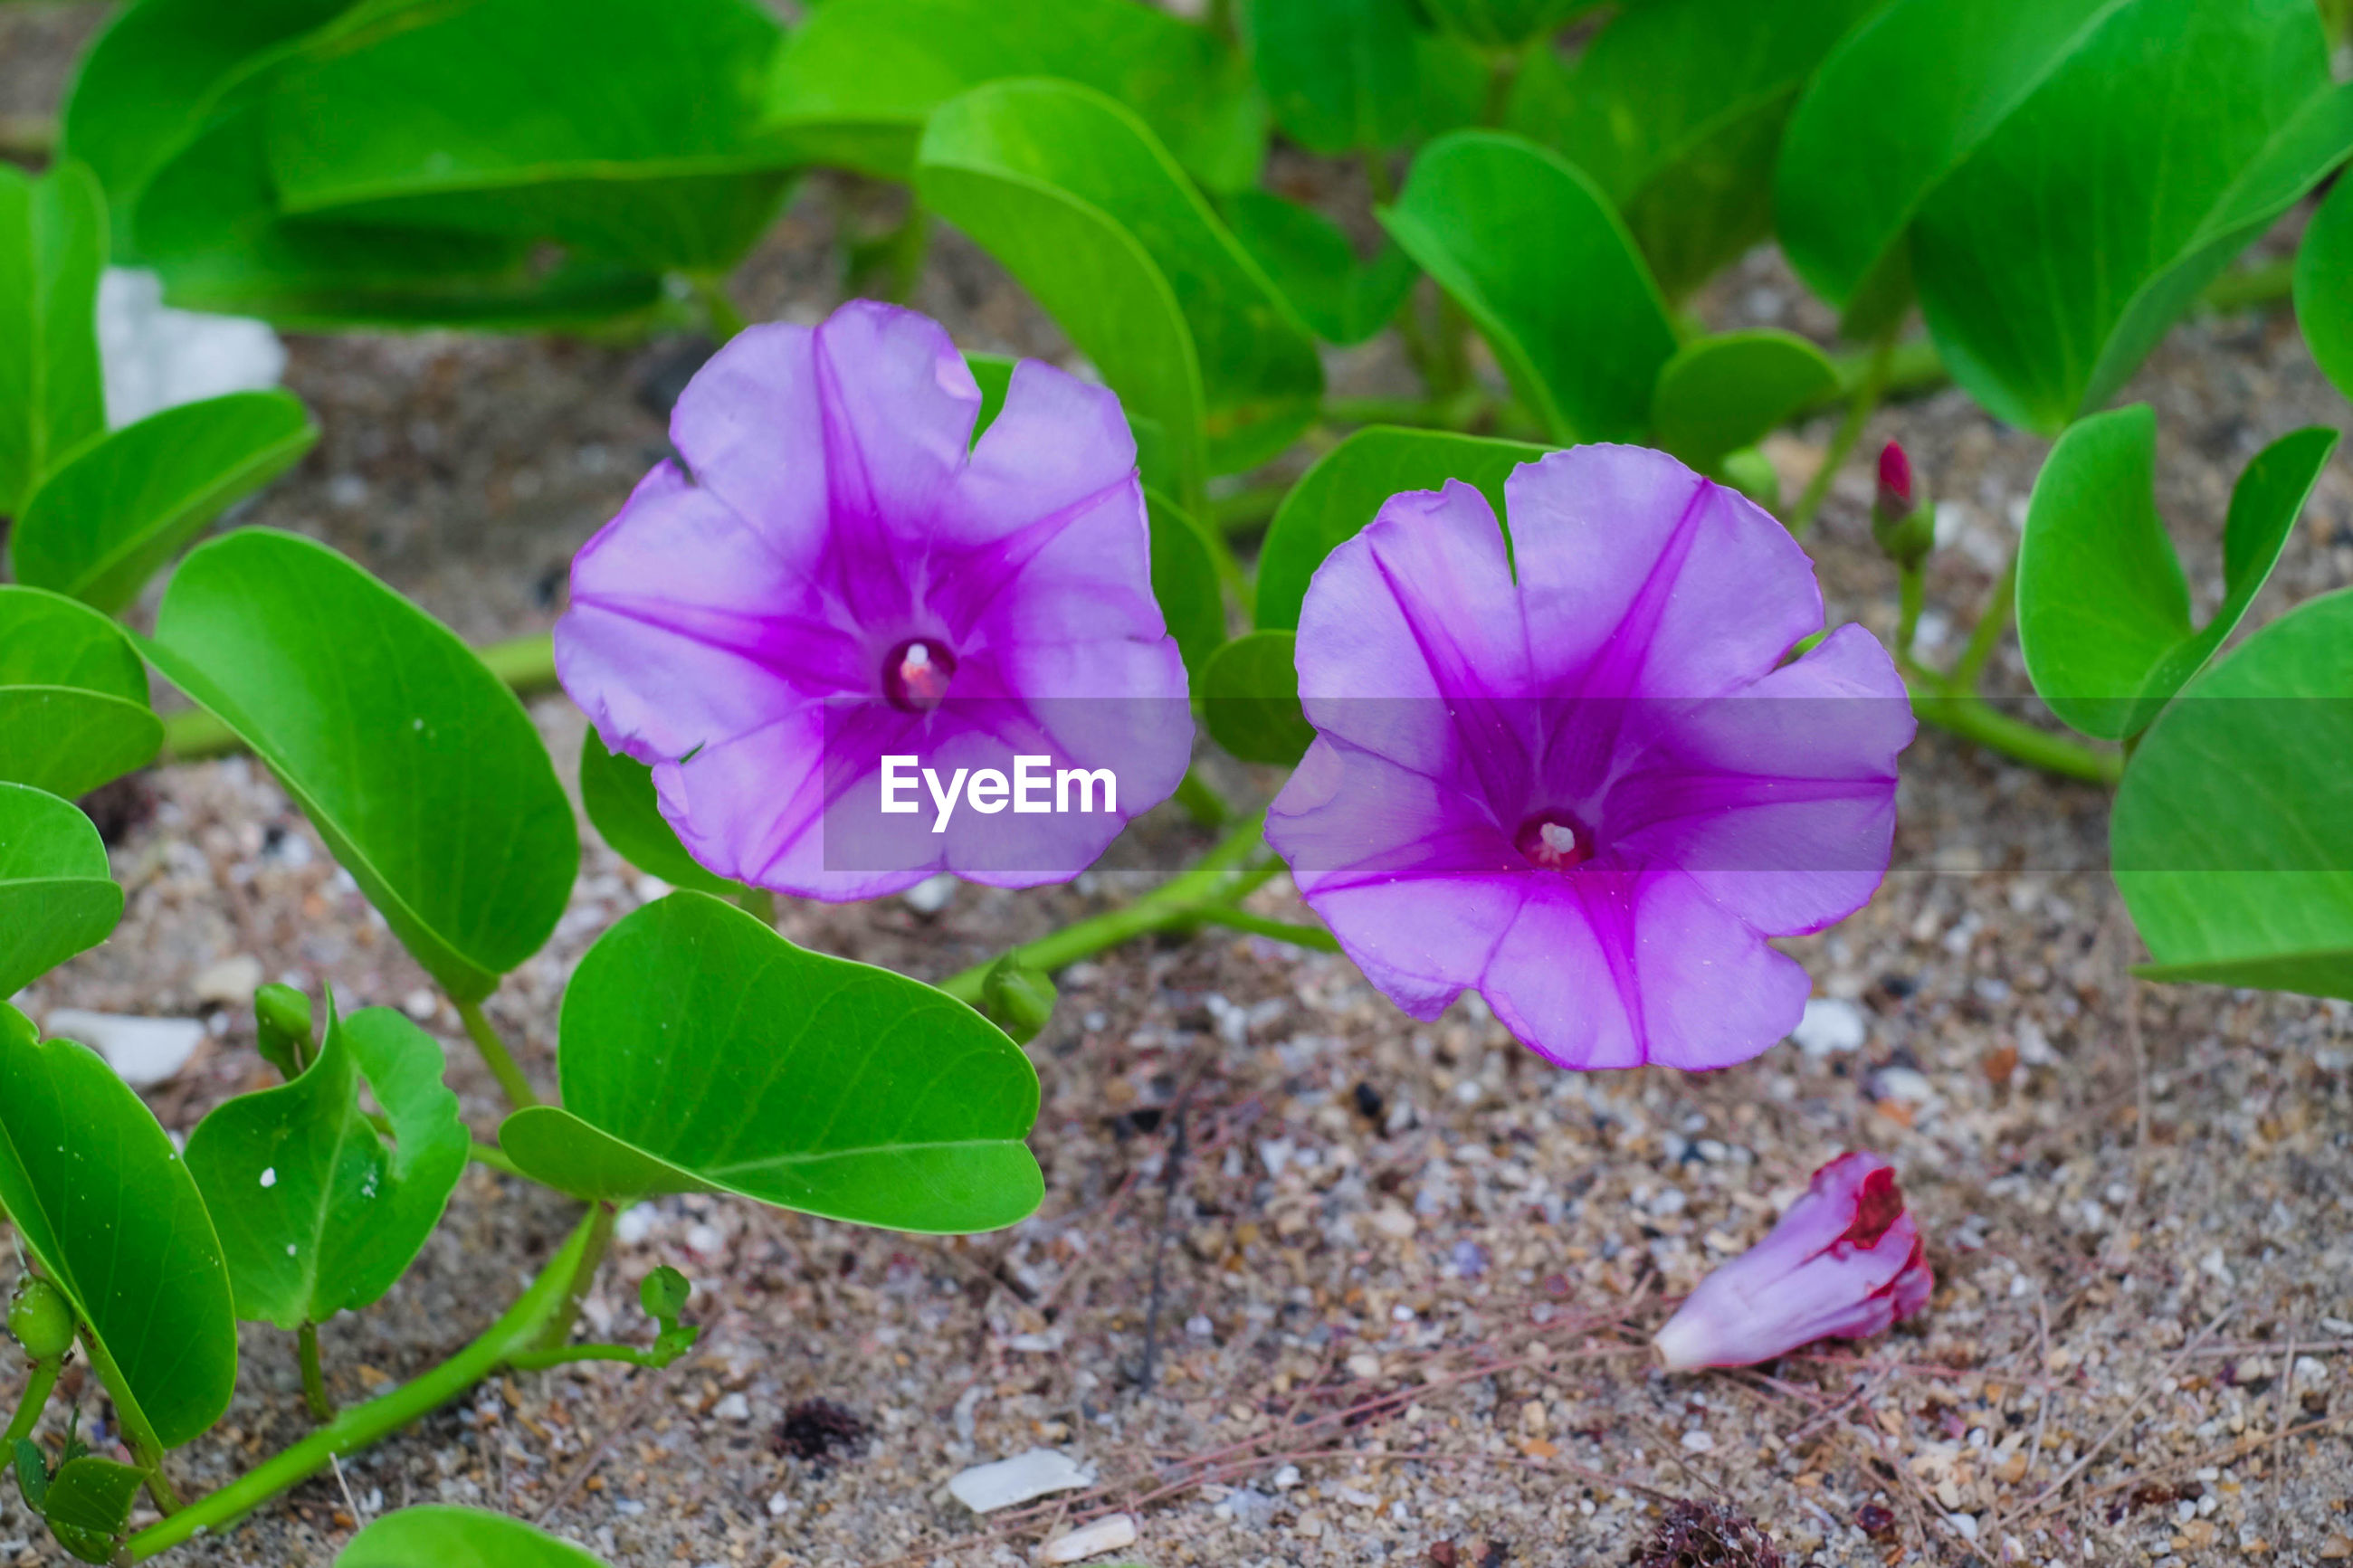 CLOSE-UP OF PINK AND PURPLE FLOWERING PLANT